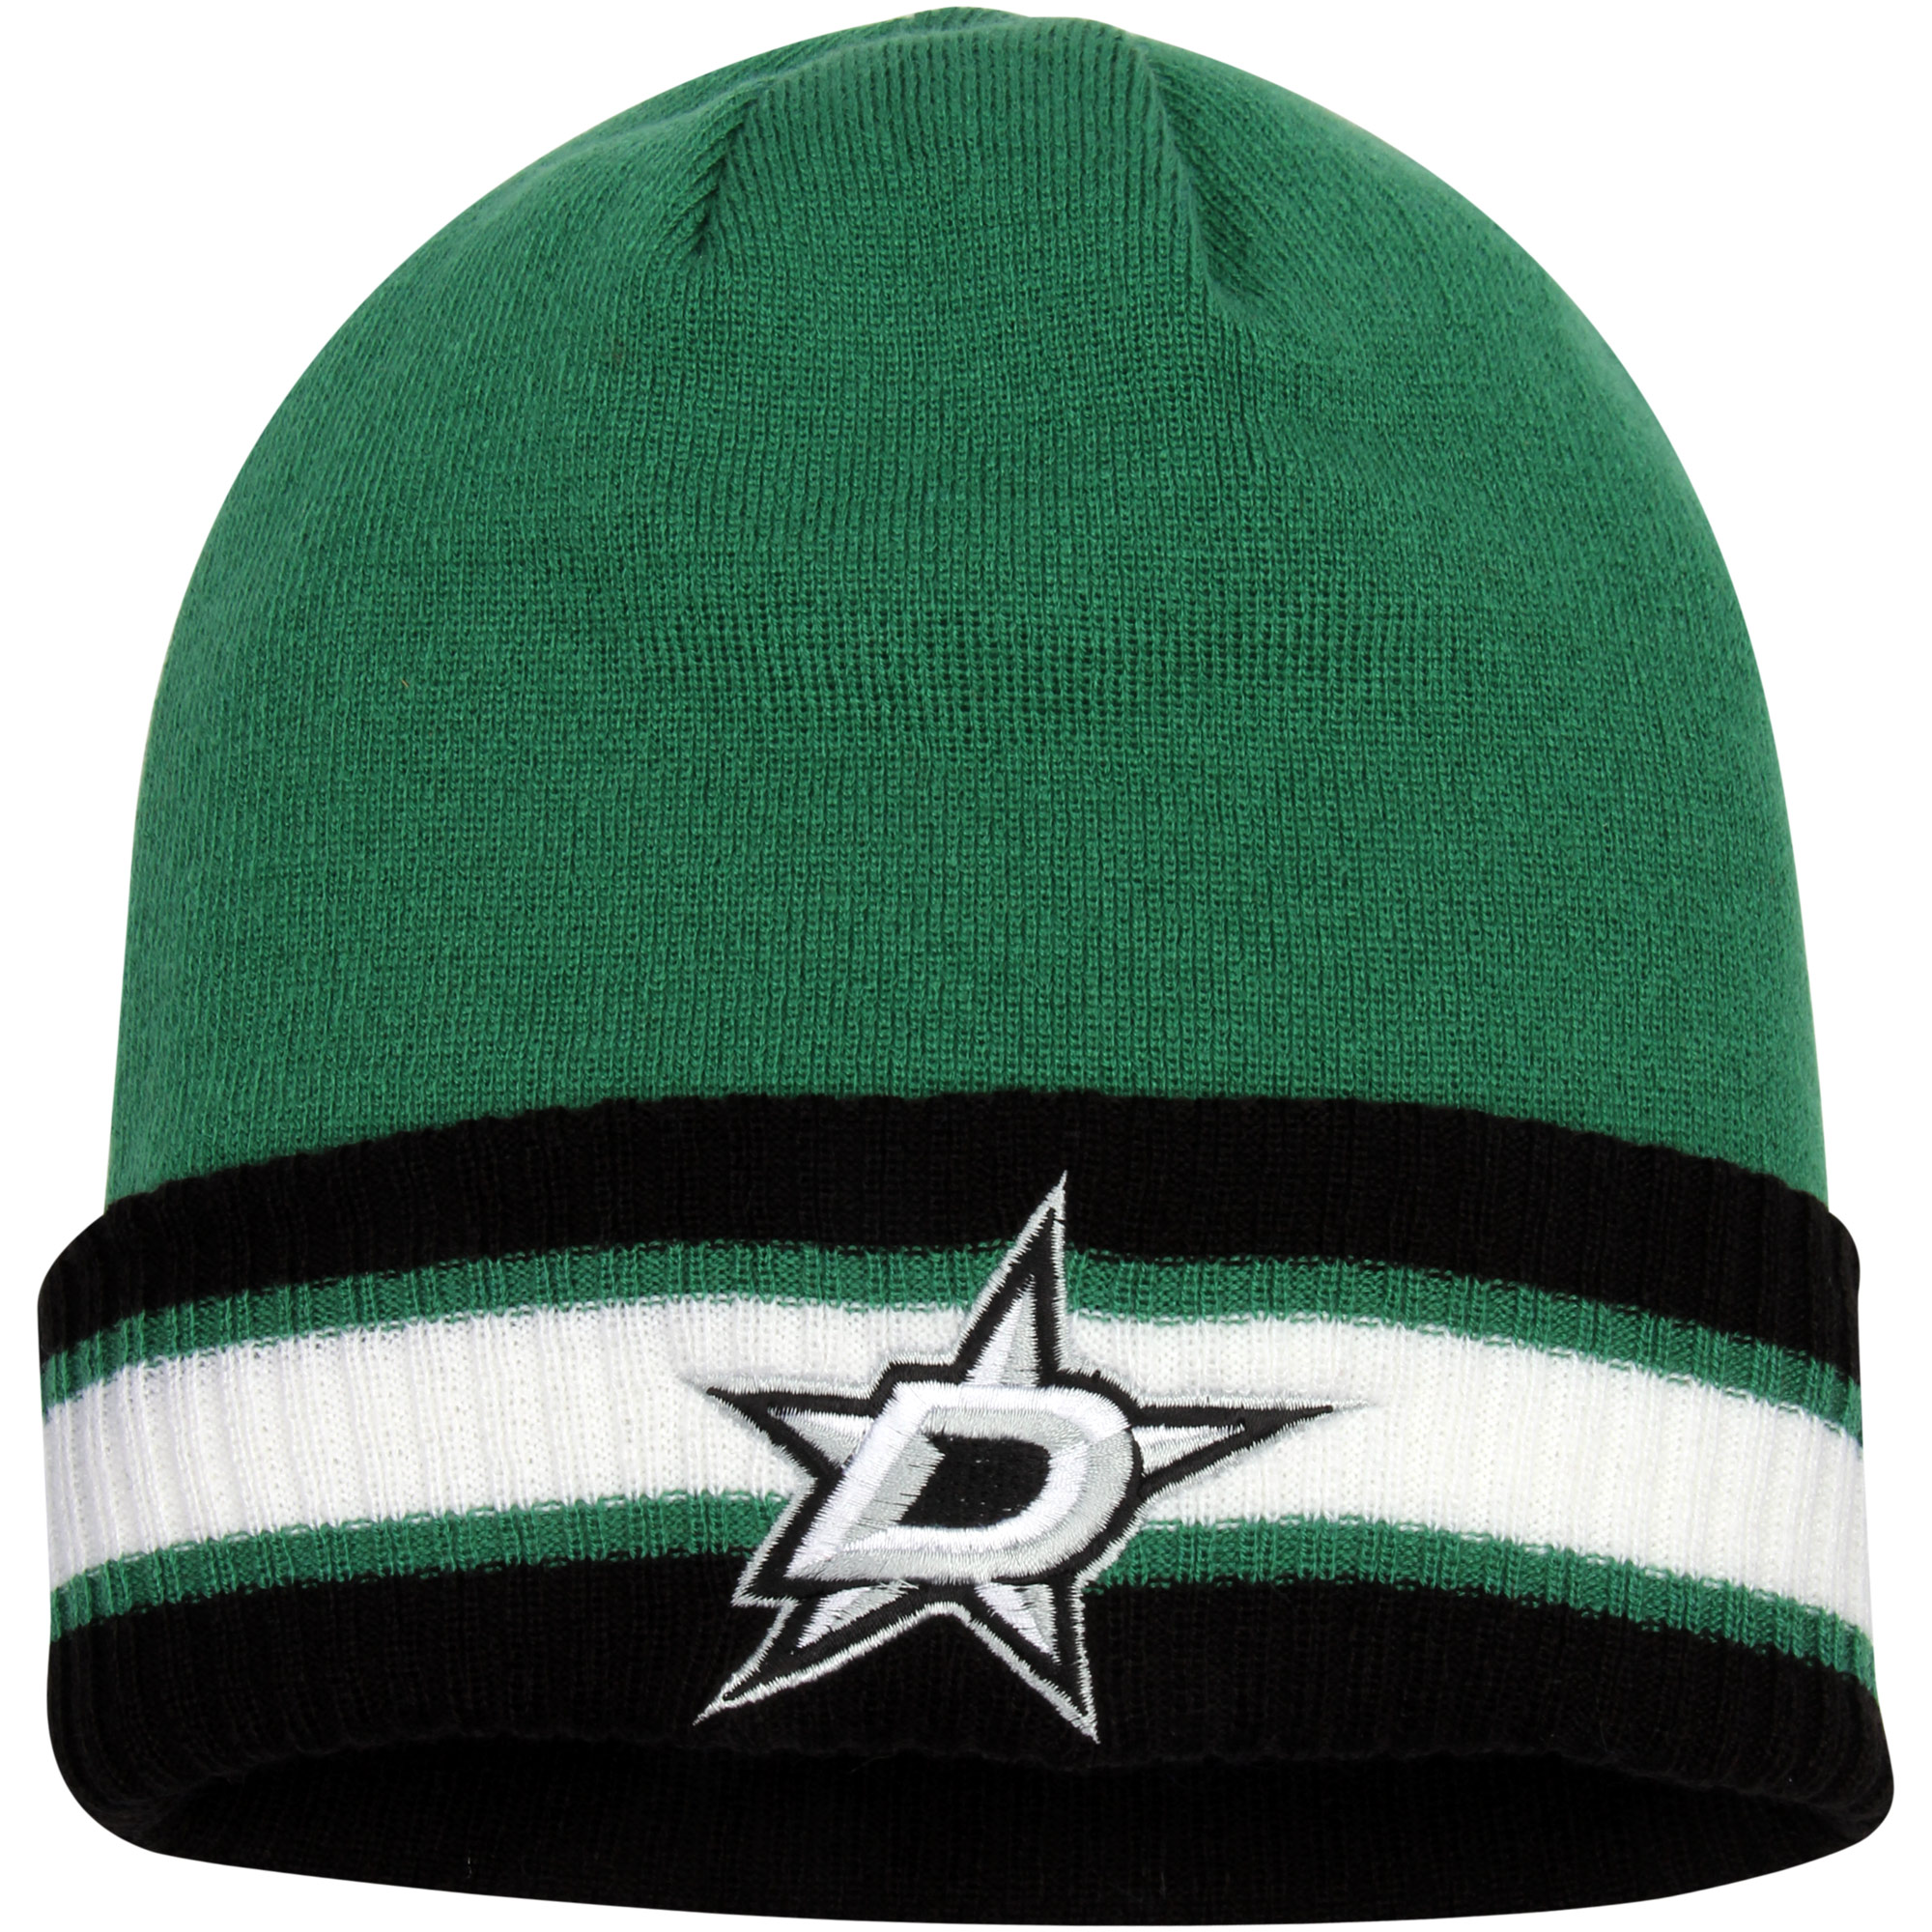 Dallas Stars Reebok Captain's Cuffed Knit Hat - Kelly Green/Black - OSFA